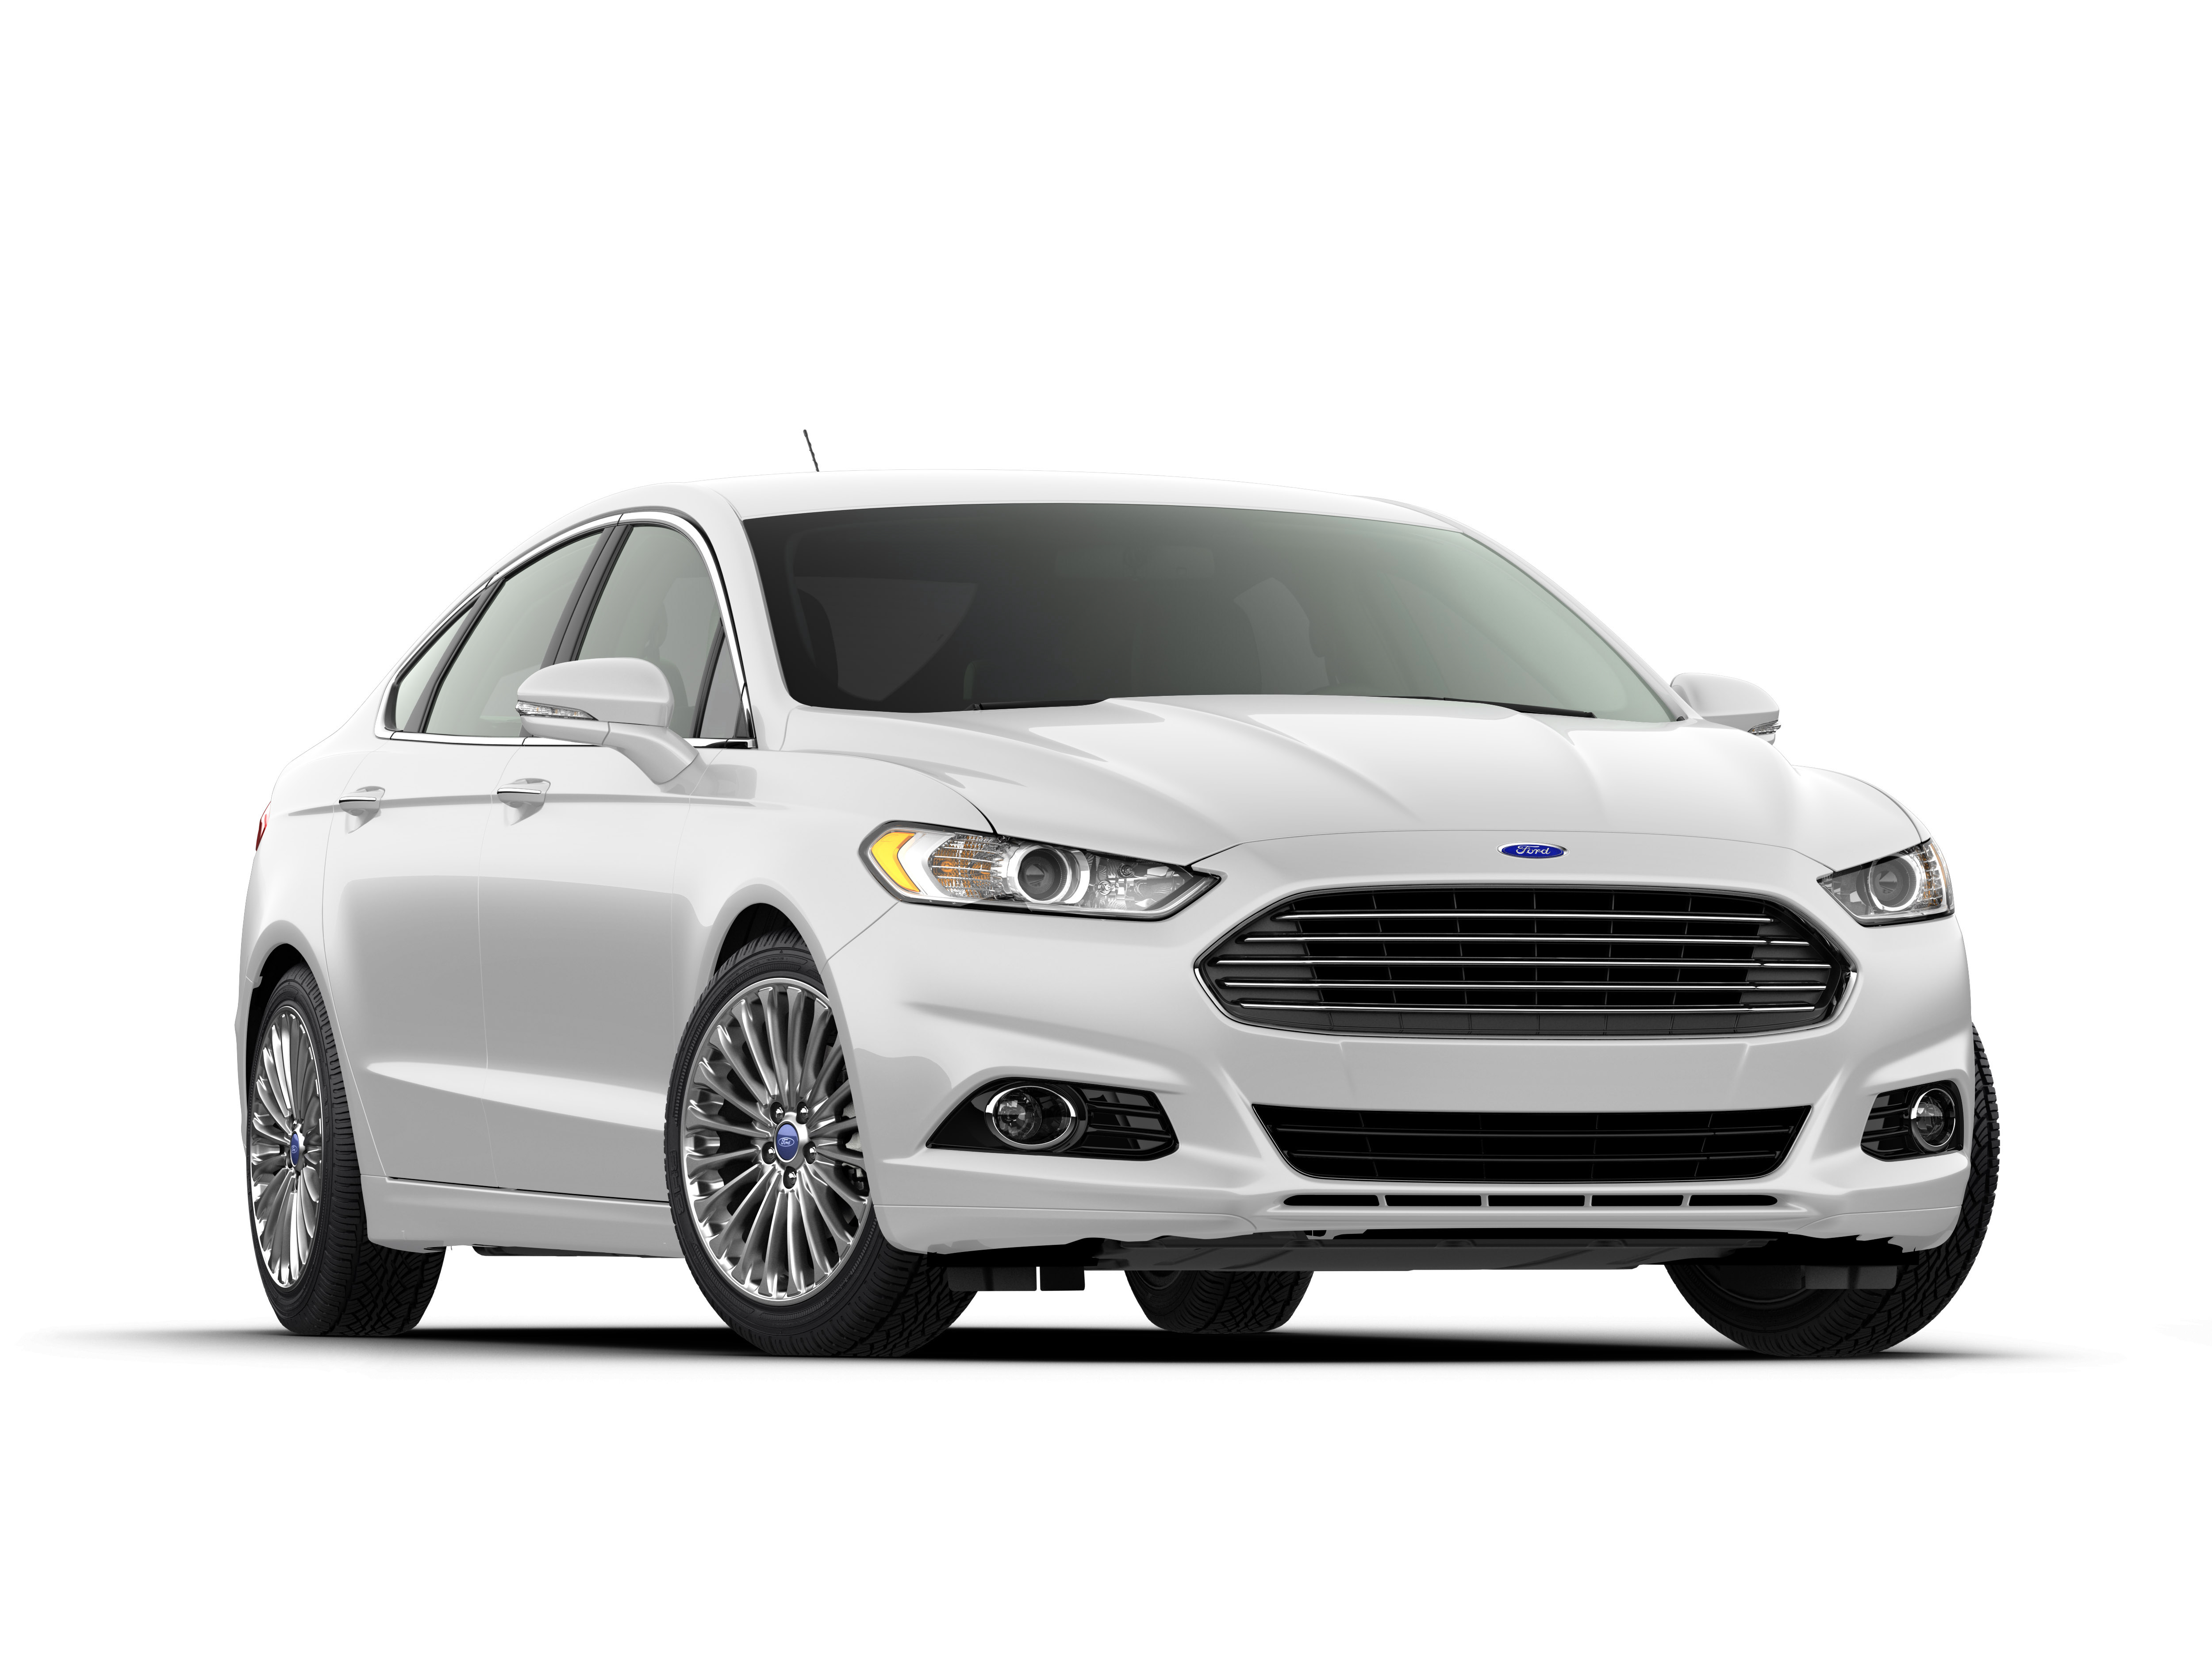 Ford Recalls 850K Vehicles for Air Bag Issue